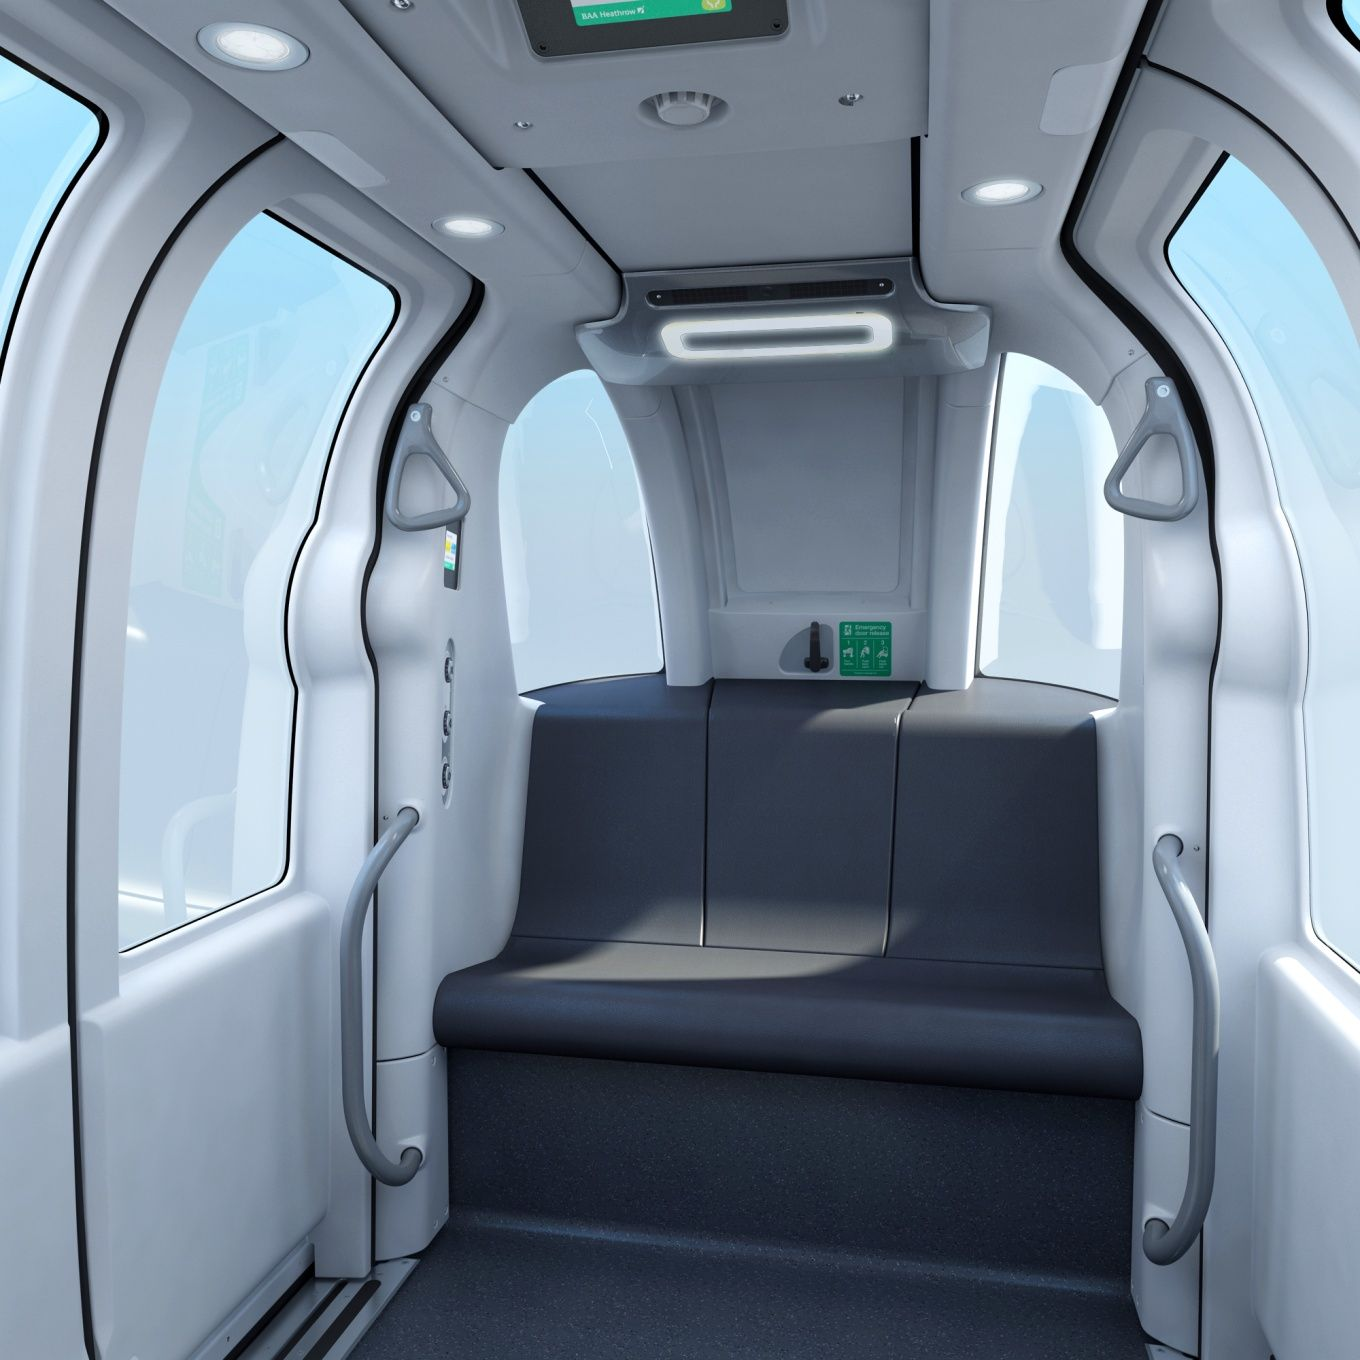 Ultra Global PRT vehicle development & design - interior #podulator ...